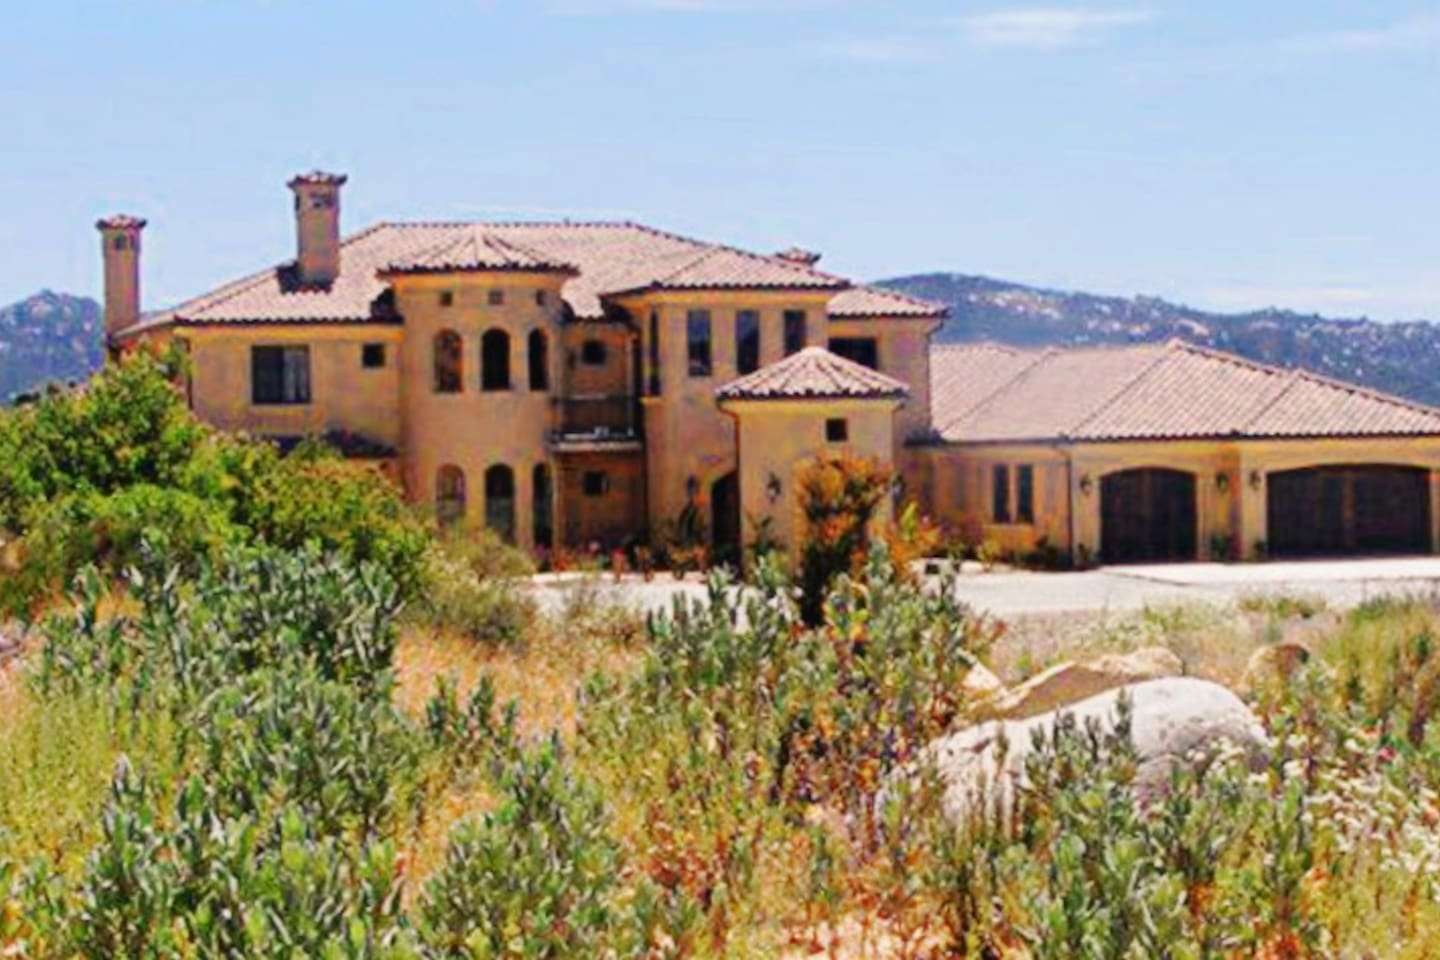 Beautiful Hilltop Mansion in the Murrieta Hills...  Local hiking trails, and breathtaking views await you on the Santa Rosa Plateau..